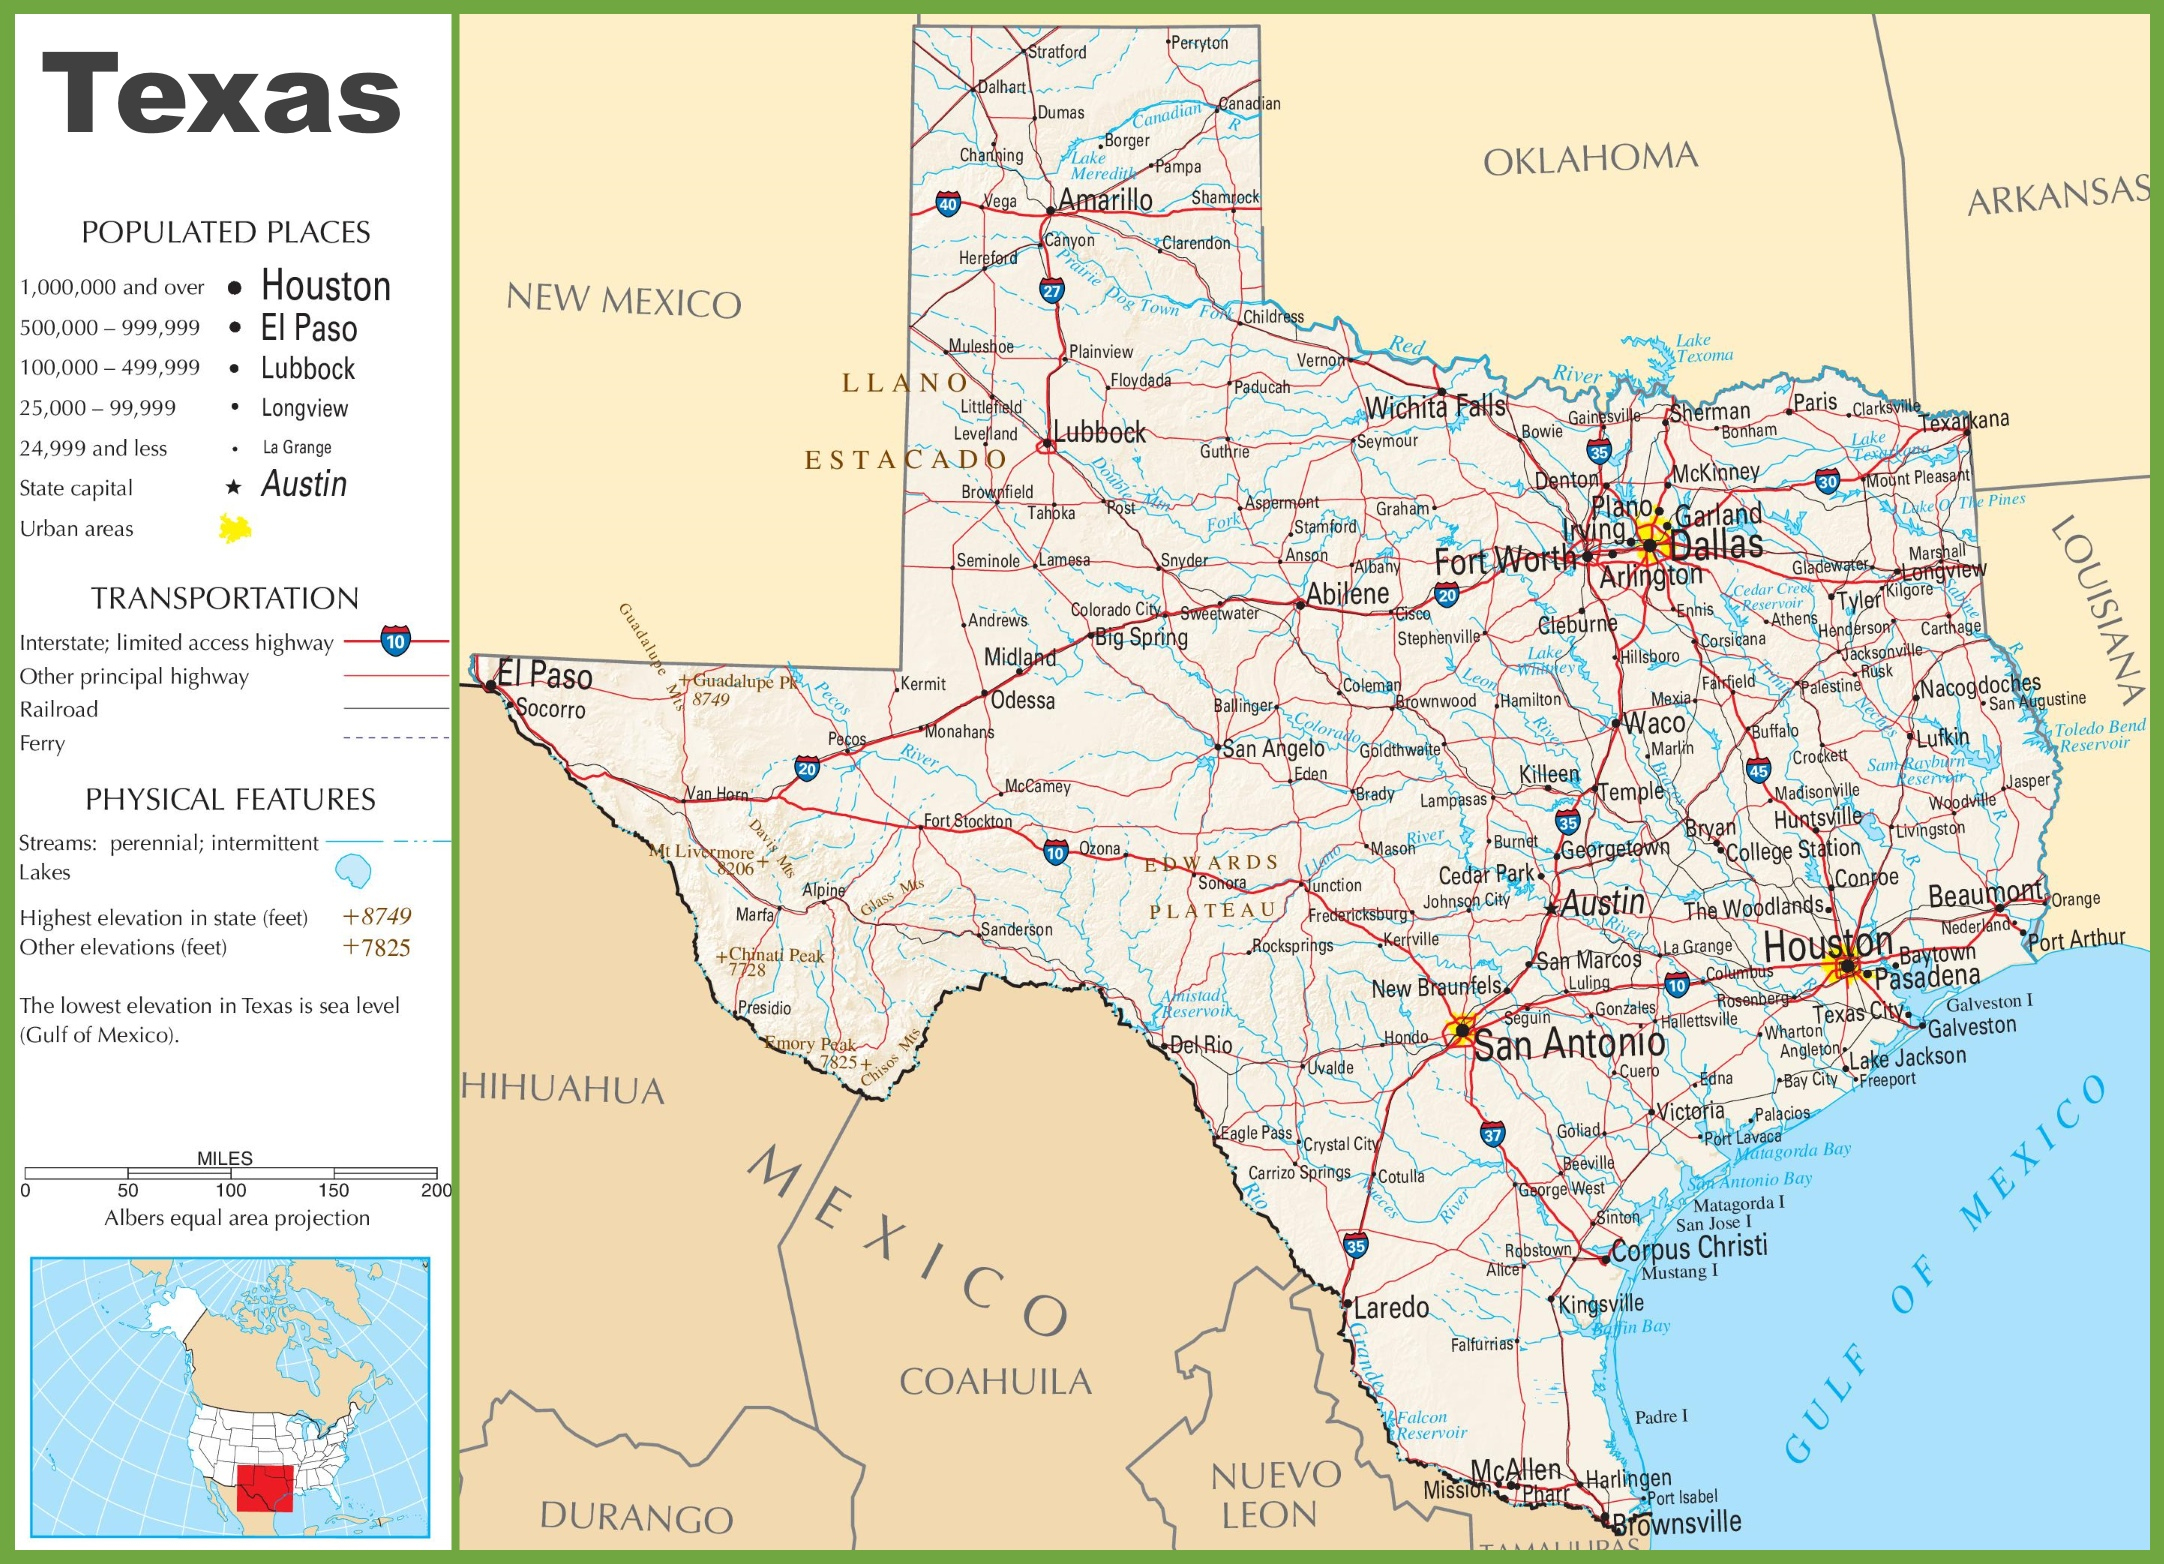 Texas Highway Map - Free Texas Highway Map